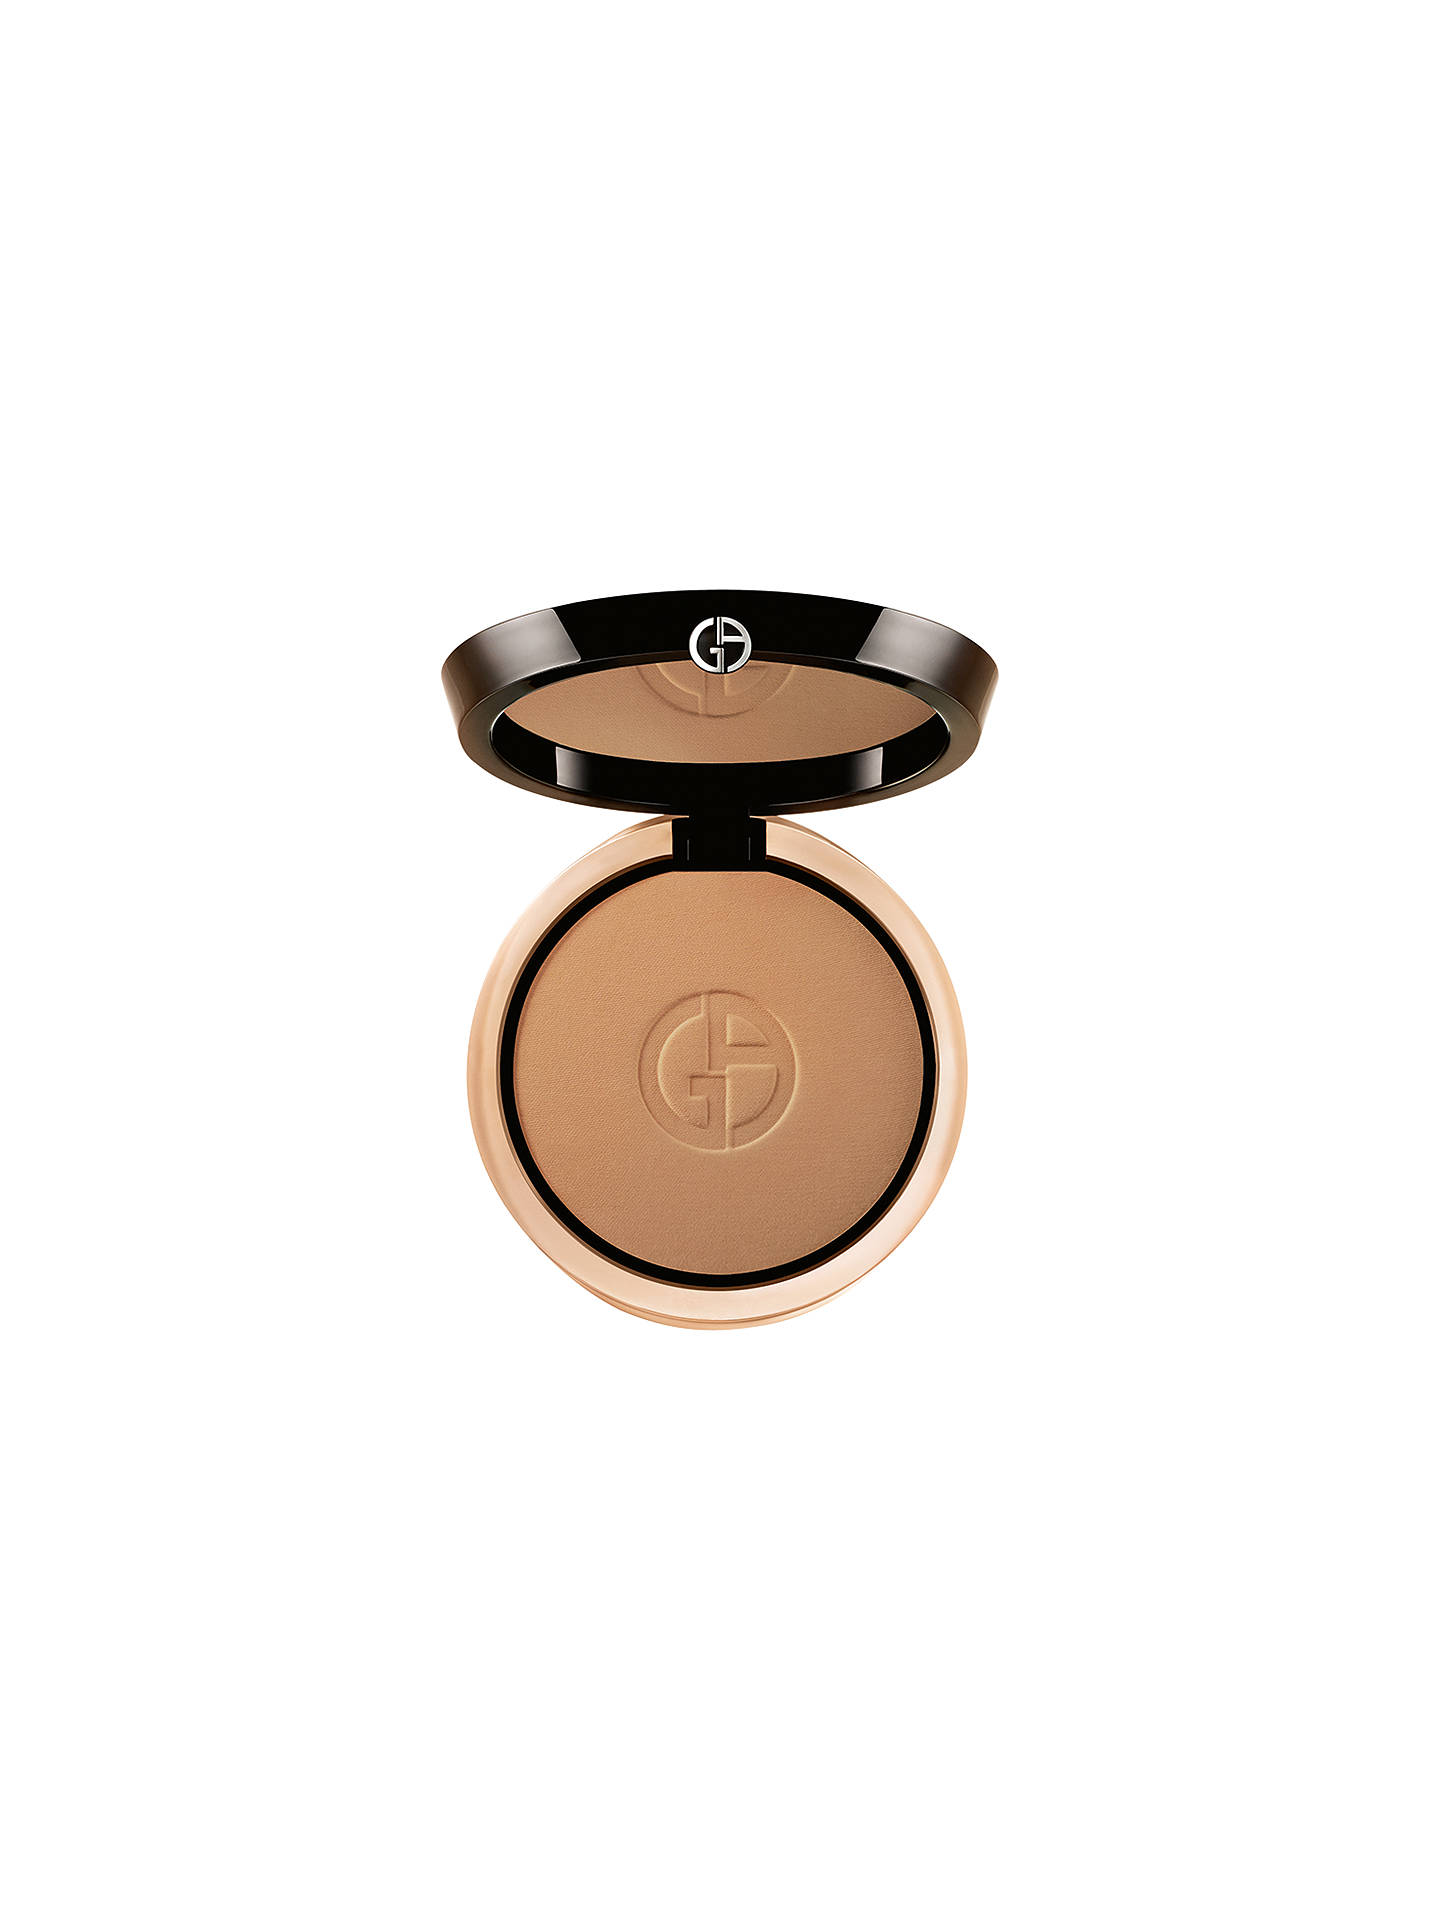 BuyGiorgio Armani Luminous Silk Compact Refill, 6.5 Online at johnlewis.com